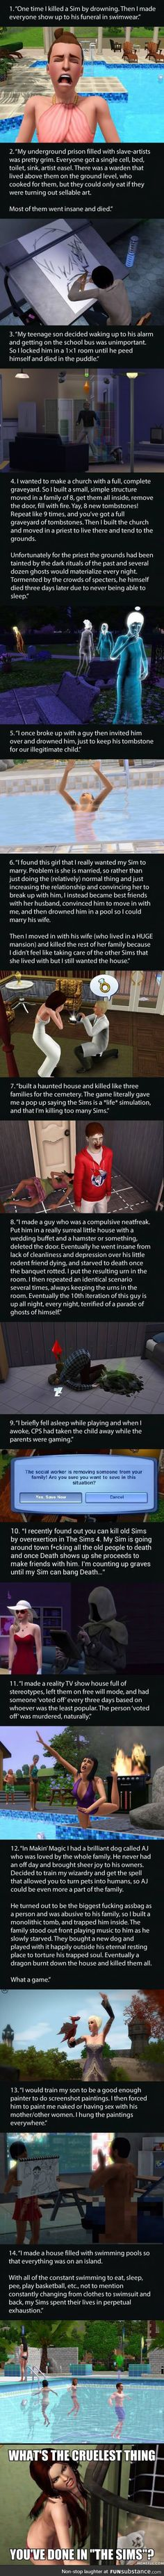 14 Most Messed Up Things People Have Done Playing The Sims